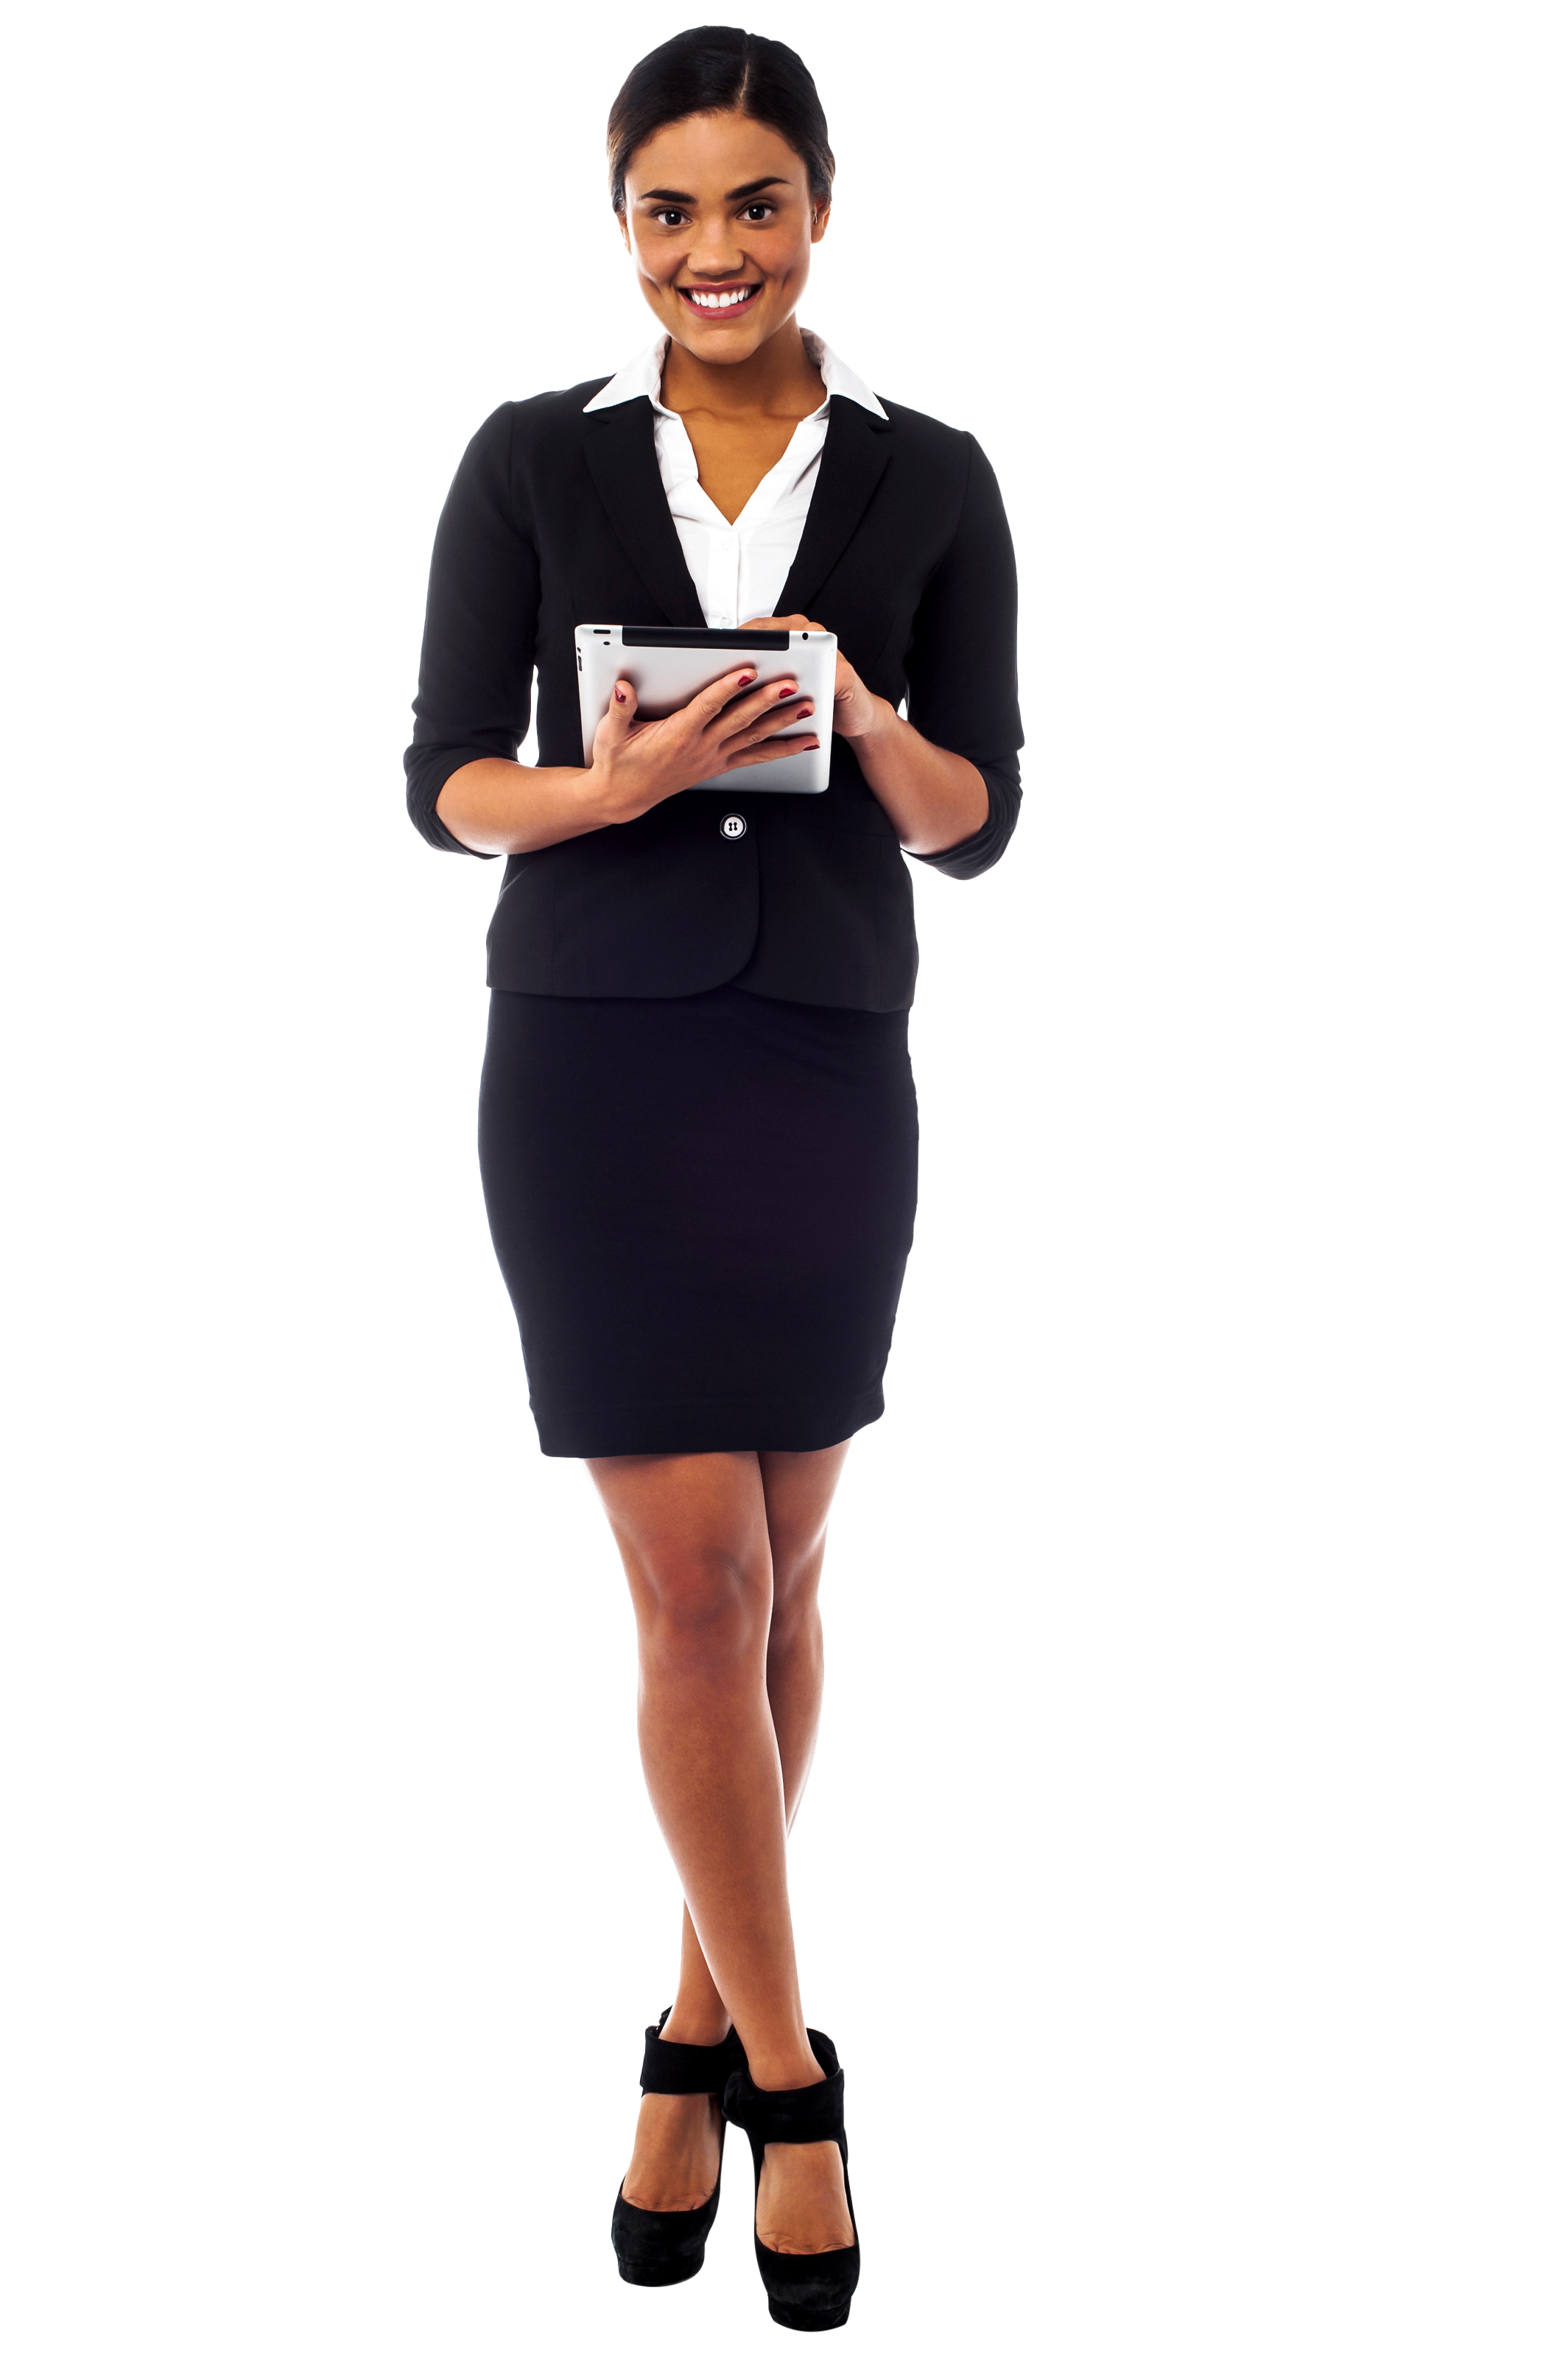 Standing Girl PNG Image.